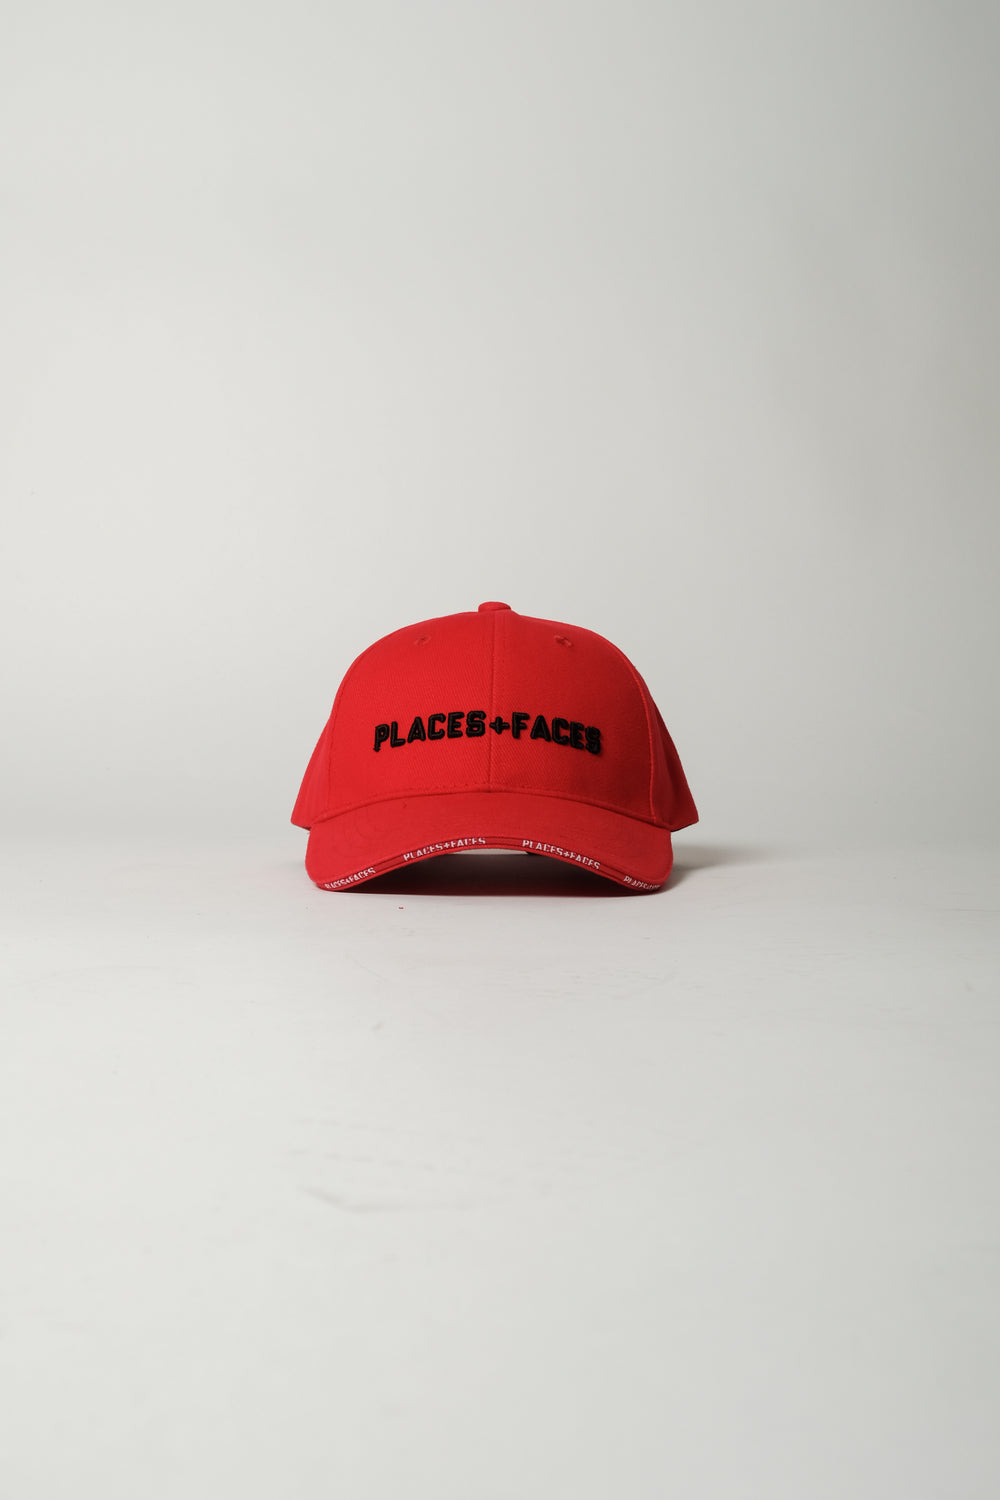 Places+Faces 3D Embroidery Logo Cap In Red